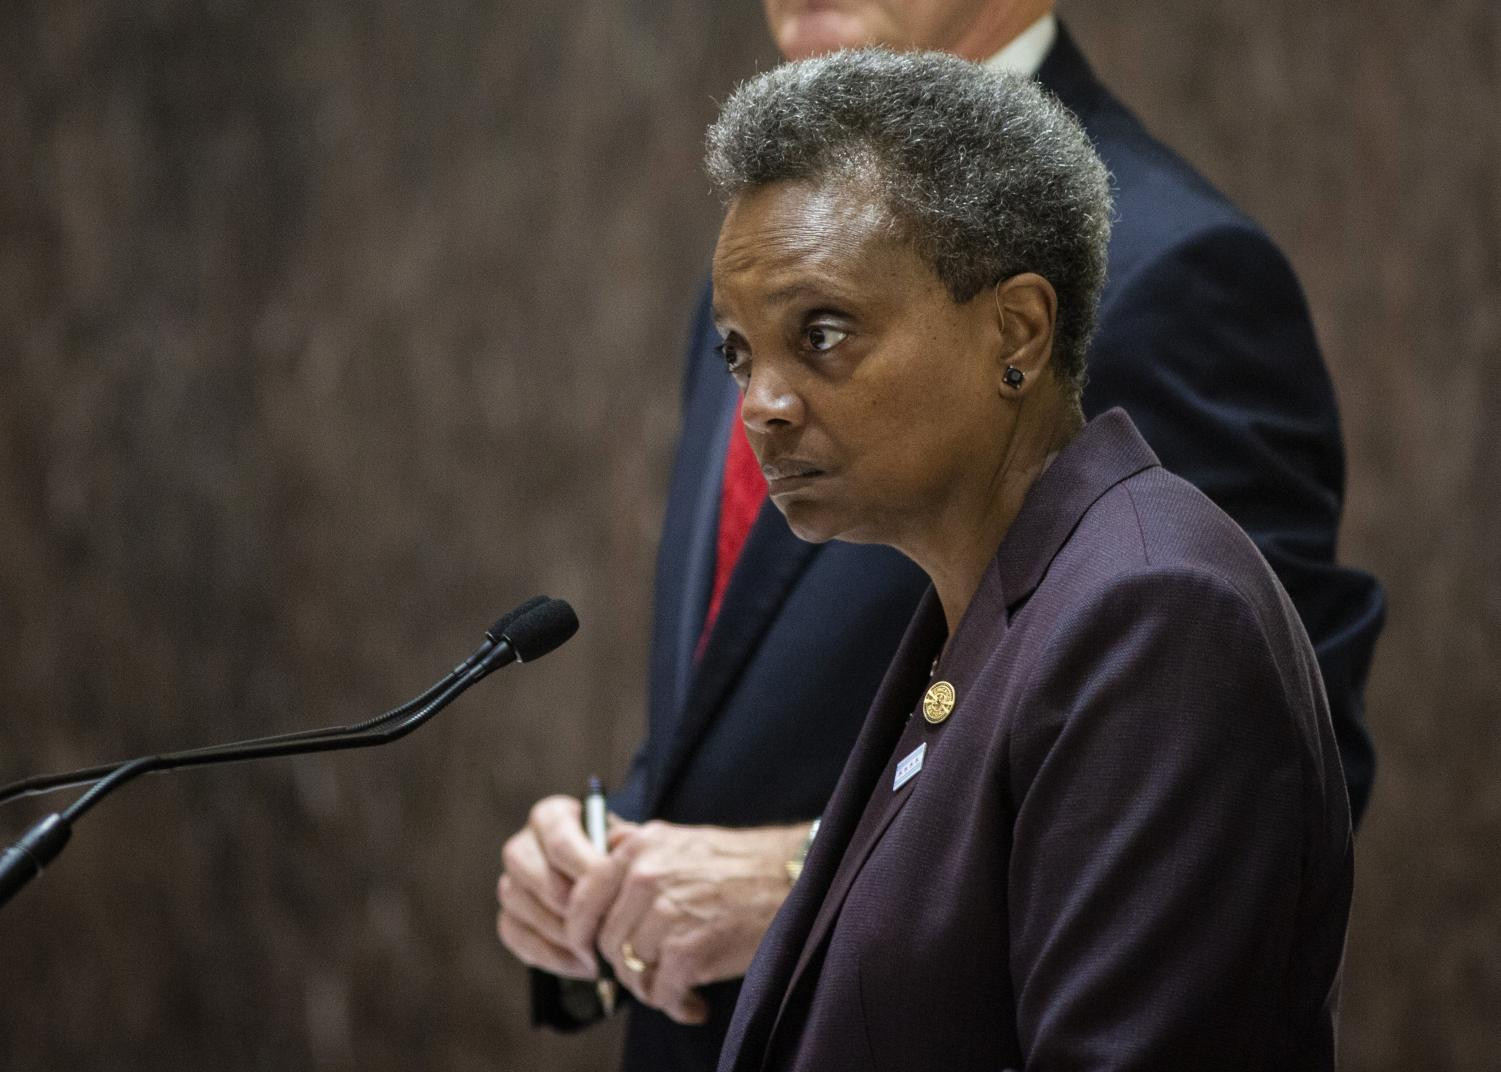 Mayor Lori Lightfoot presides over her first city council meeting at City Hall in Chicago on Wednesday, May 29, 2019.